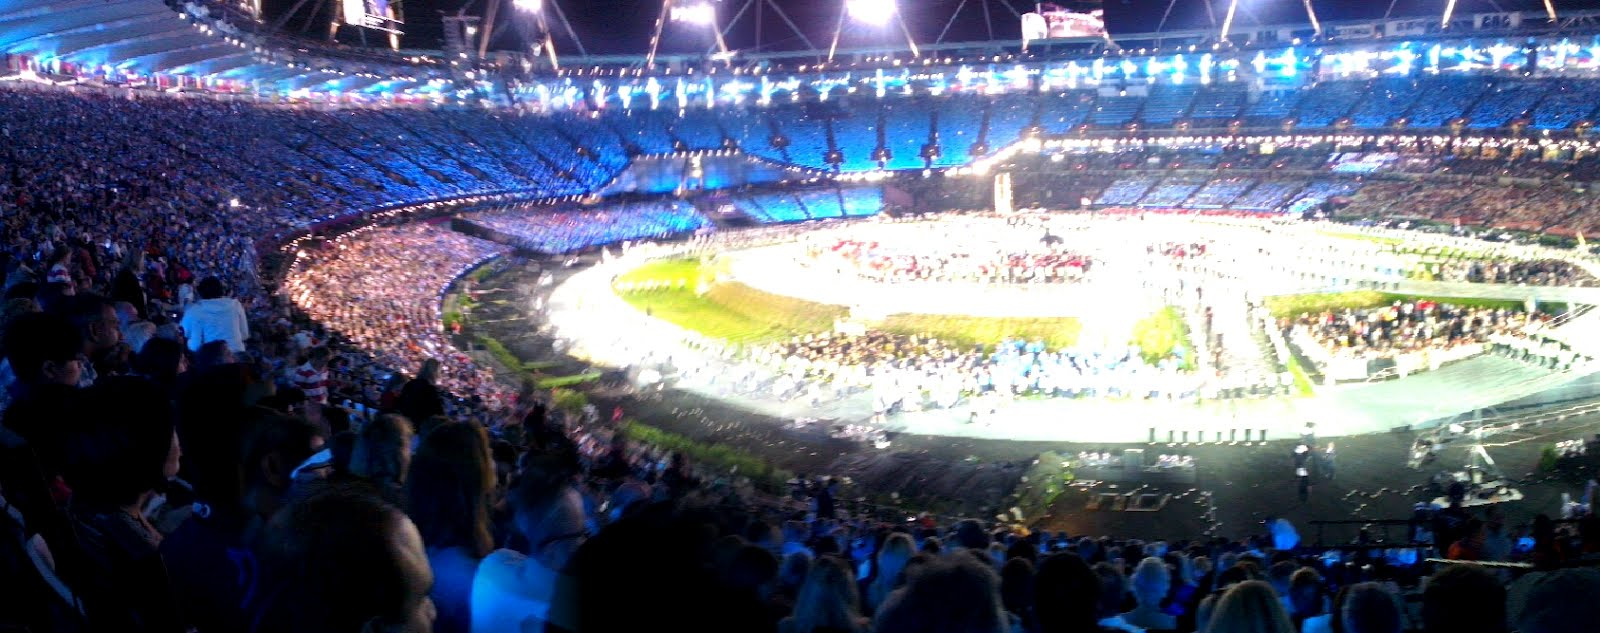 Indigo Roth'S Olympic Opening Ceremony